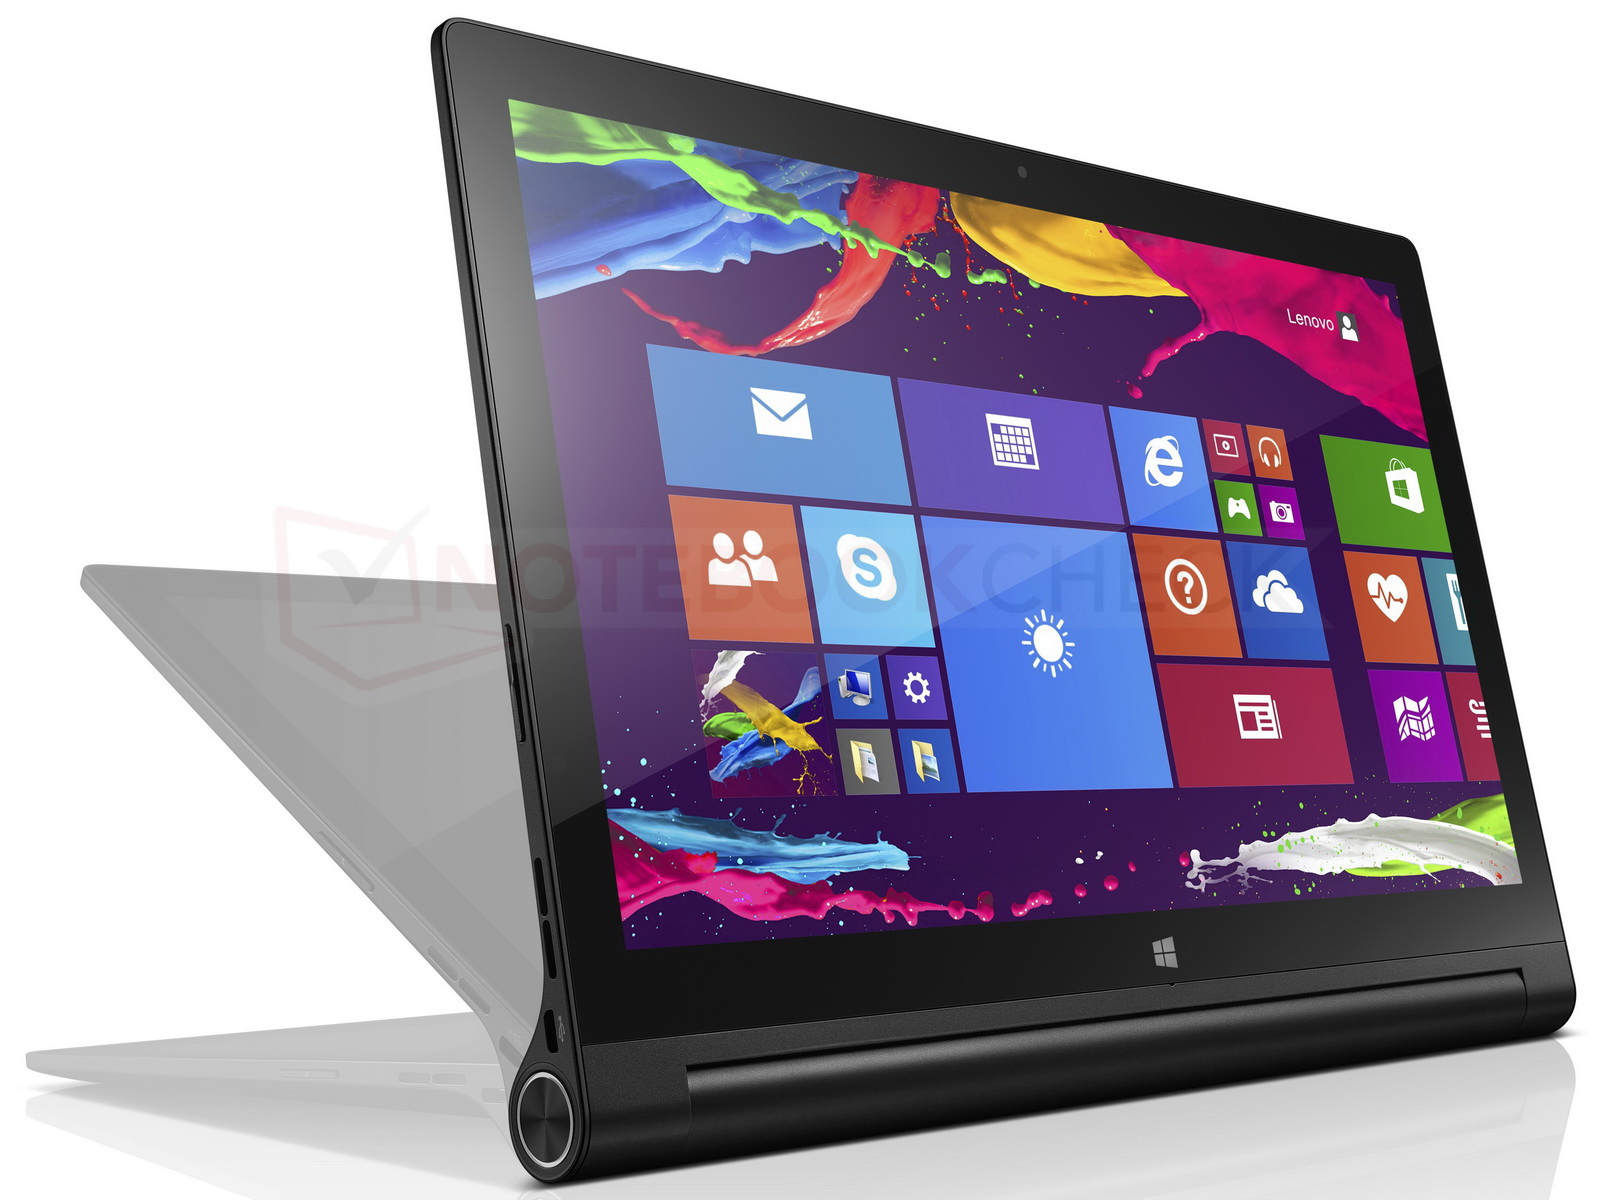 lenovo 13 zoll yoga tablet 2 mit windows 8 1 news. Black Bedroom Furniture Sets. Home Design Ideas